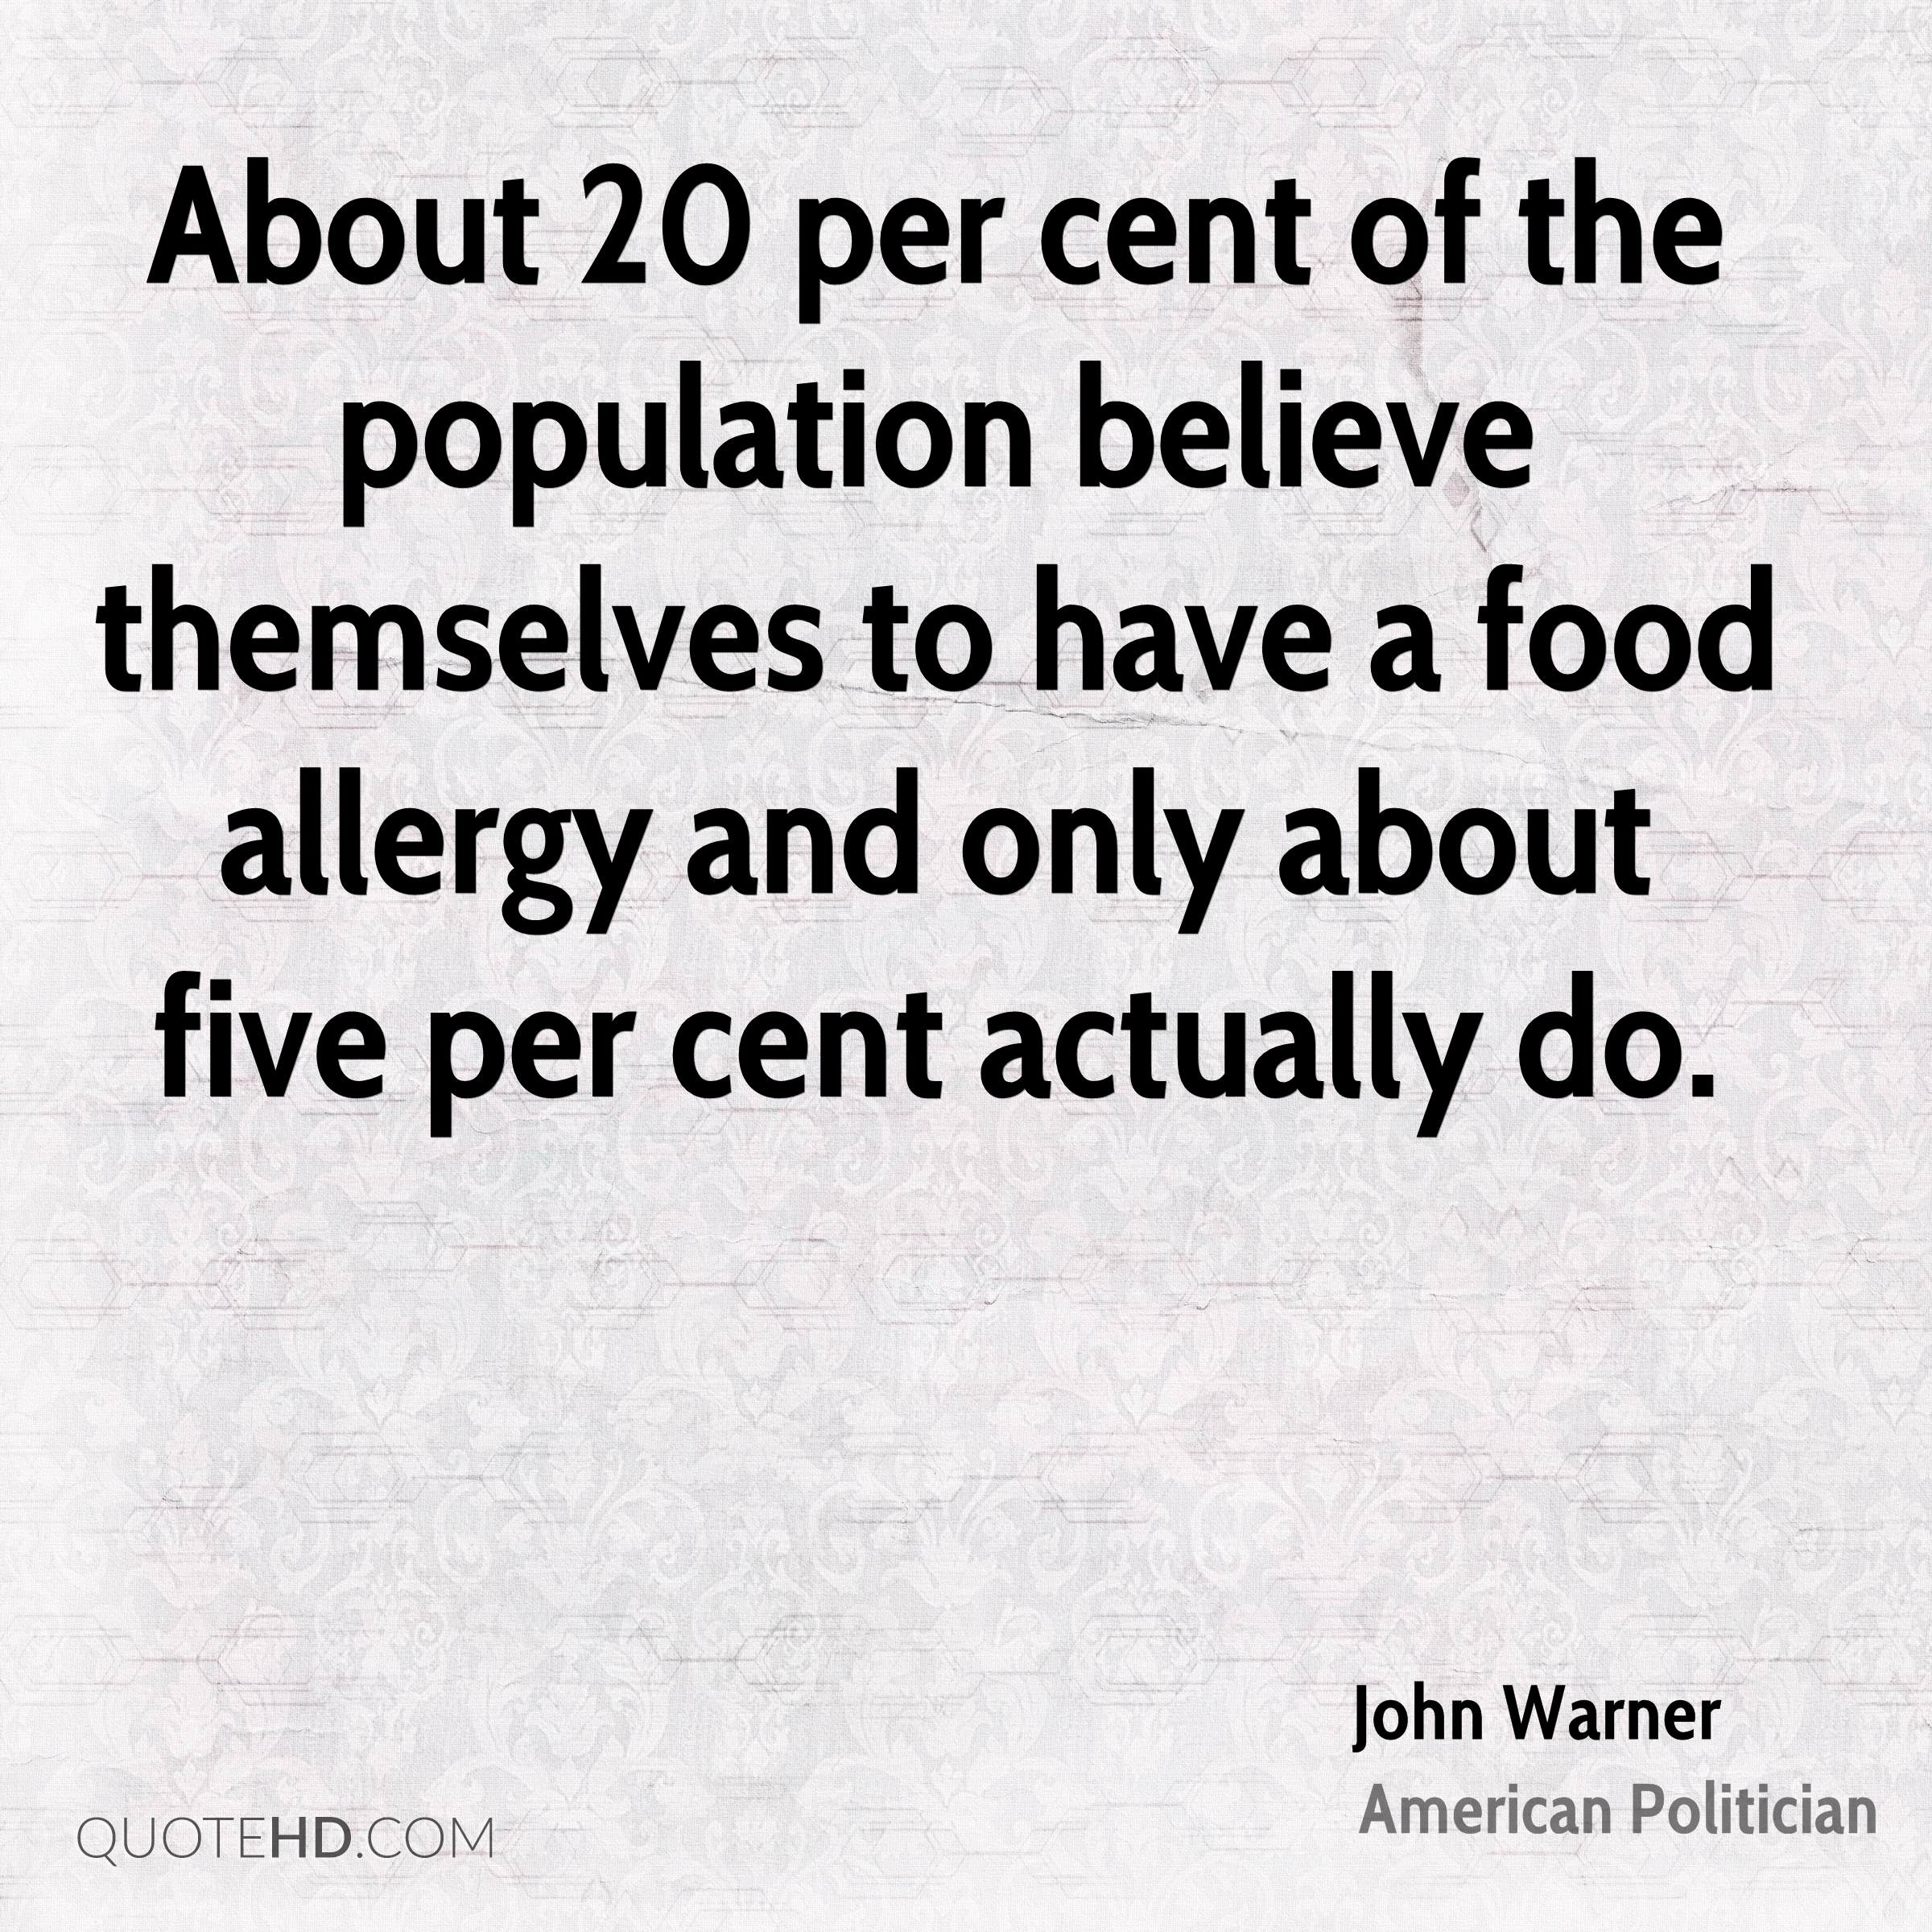 About 20 per cent of the population believe themselves to have a food allergy and only about five per cent actually do.